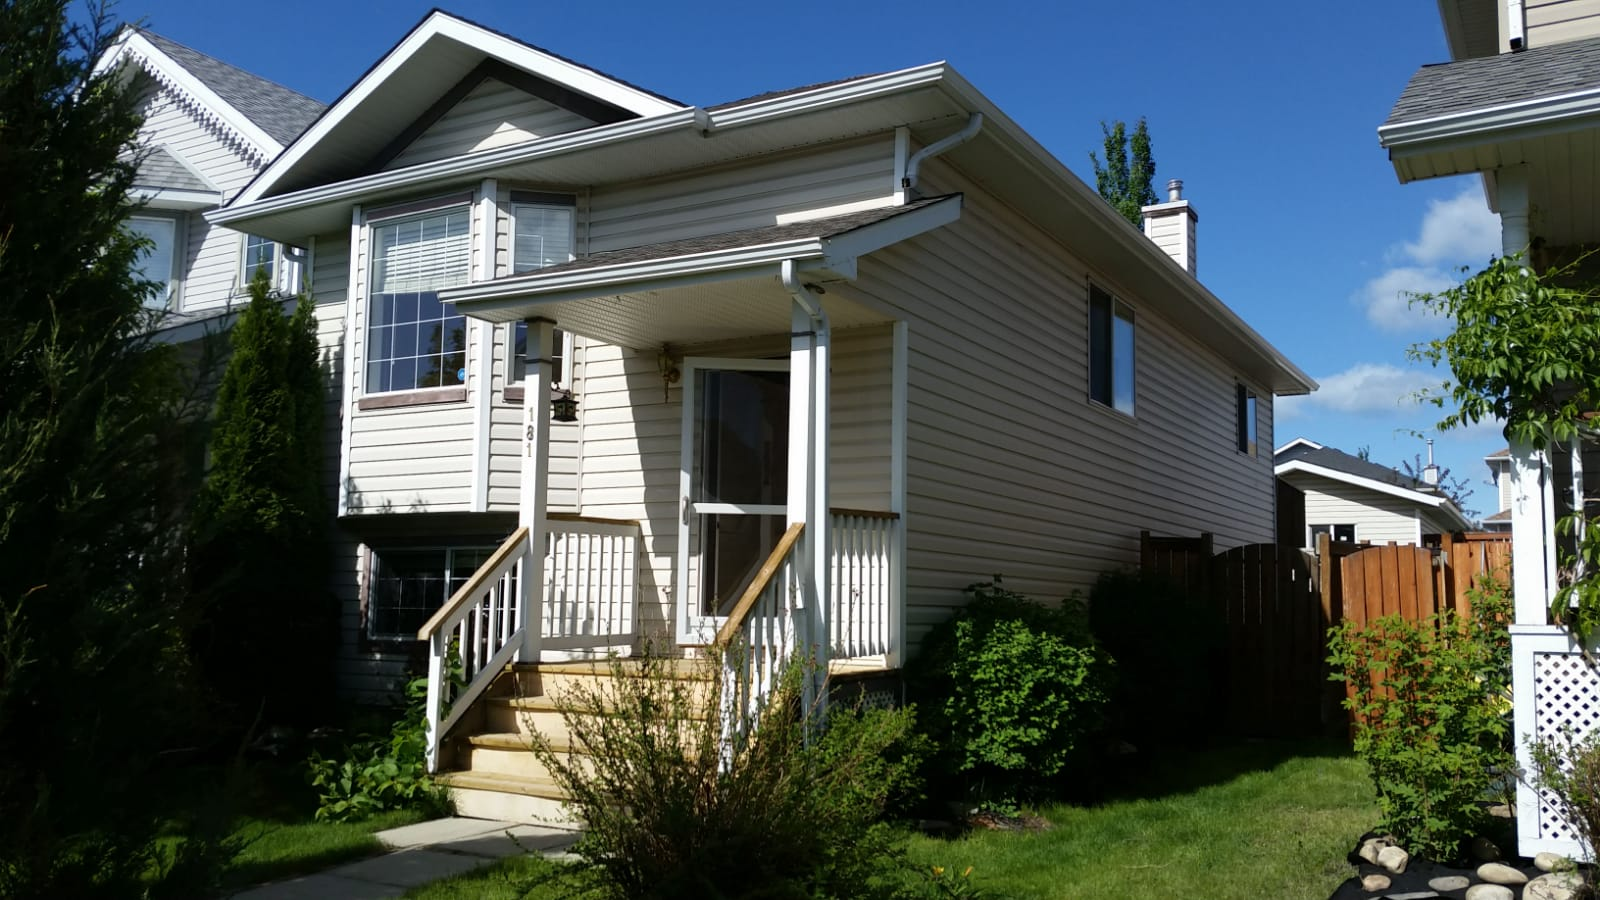 Bi-level Single garage, Air conditioned-detached single family home in Bridlewood